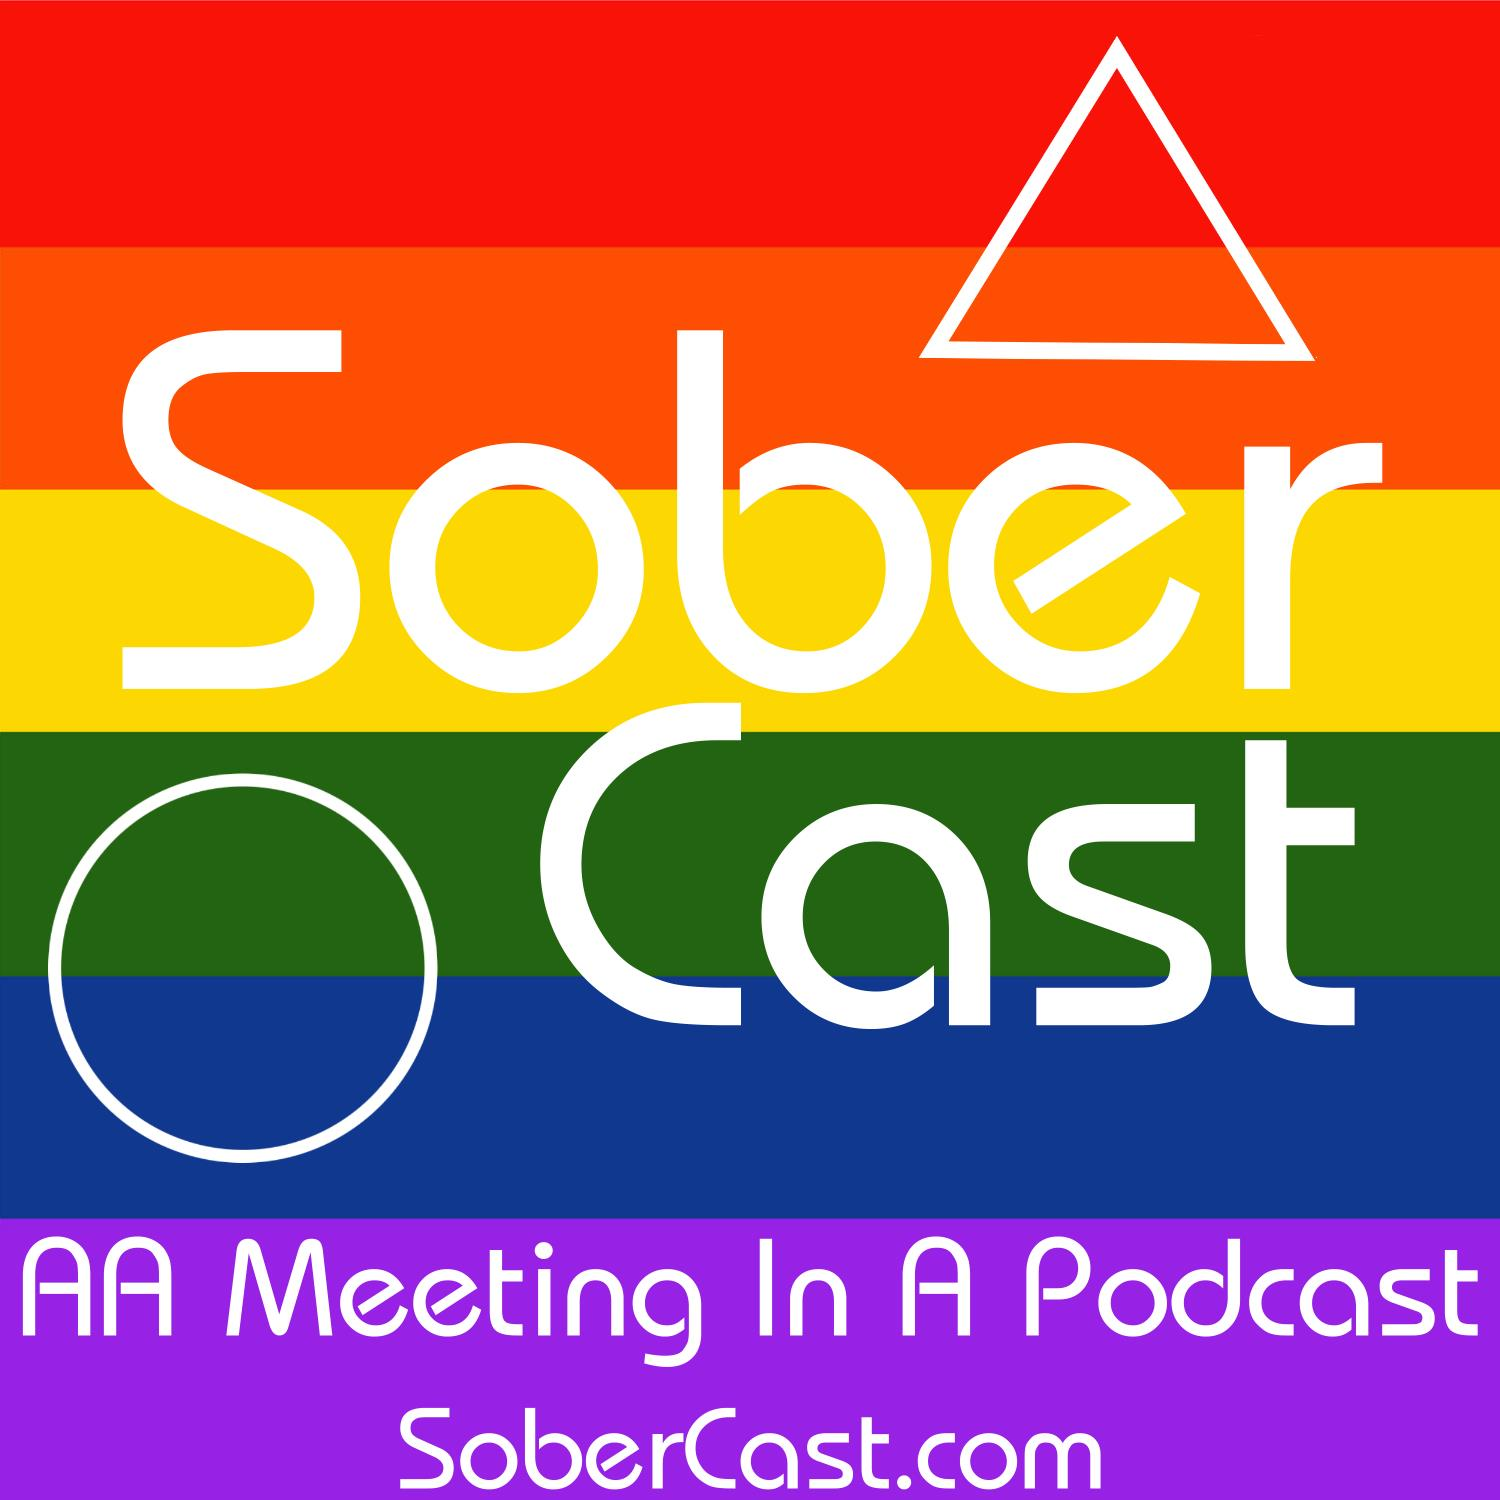 Lisa W at the living sober roundup in San Francisco in 2014 (LGBTQ)